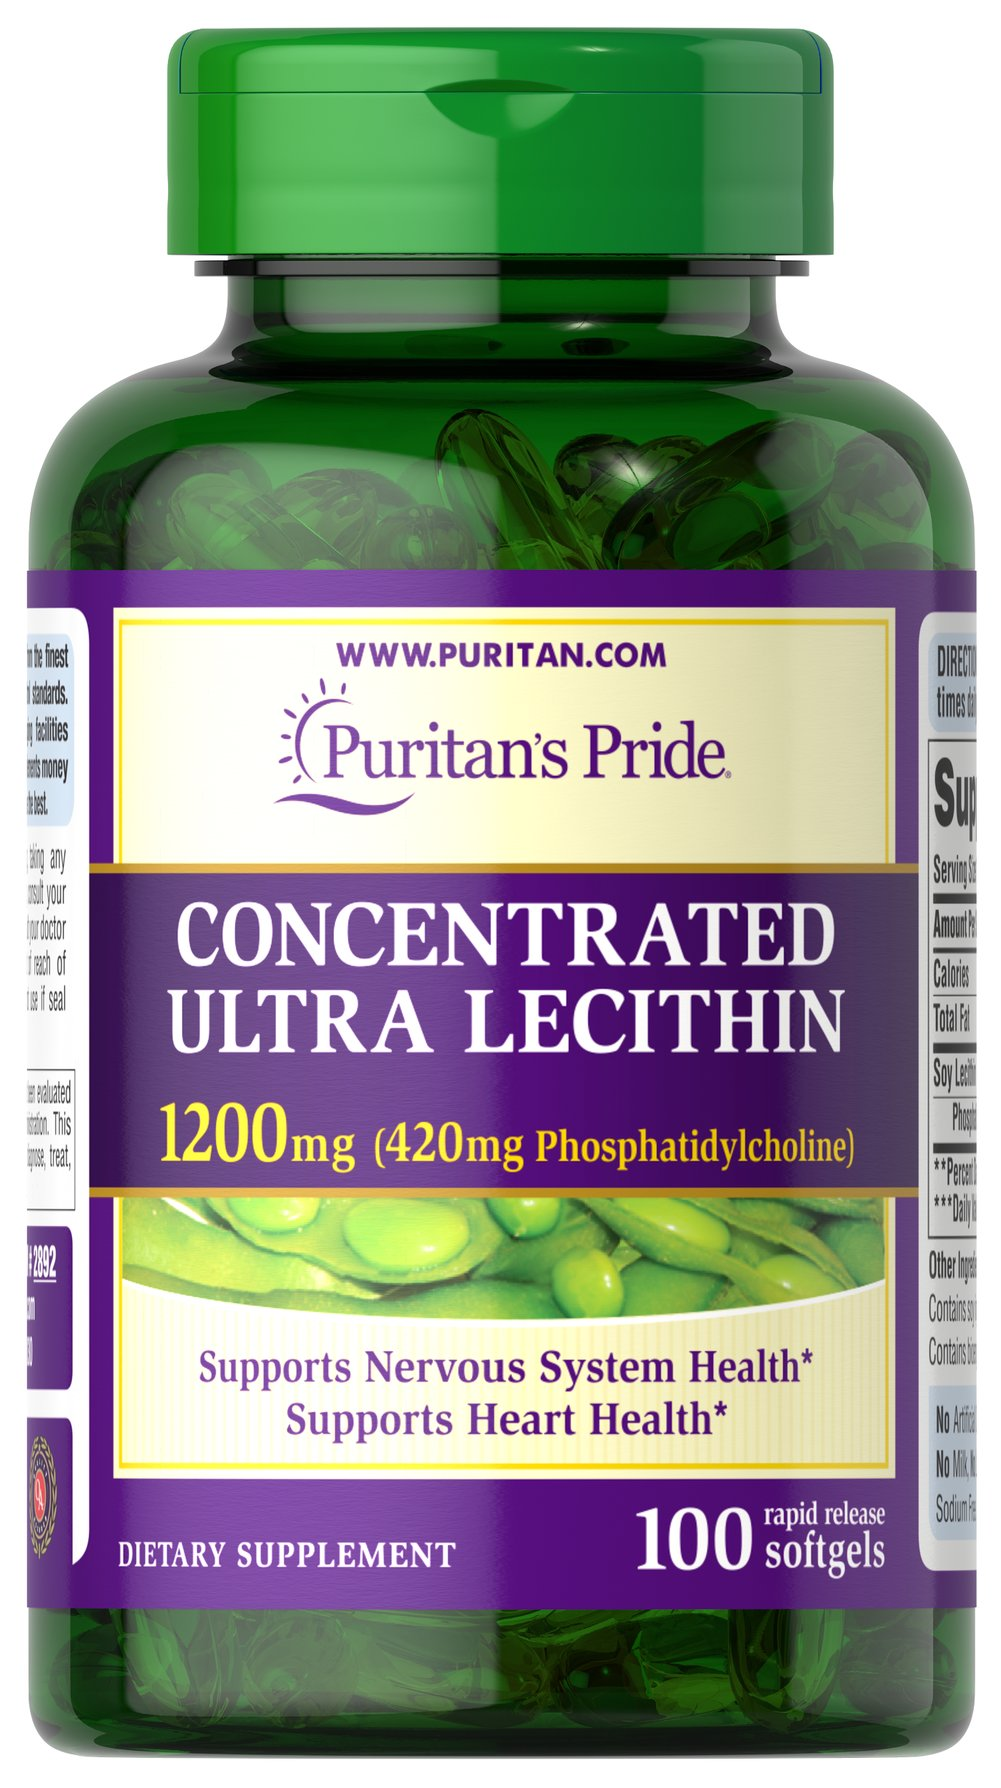 Concentrated Ultra Lecithin 1200 mg